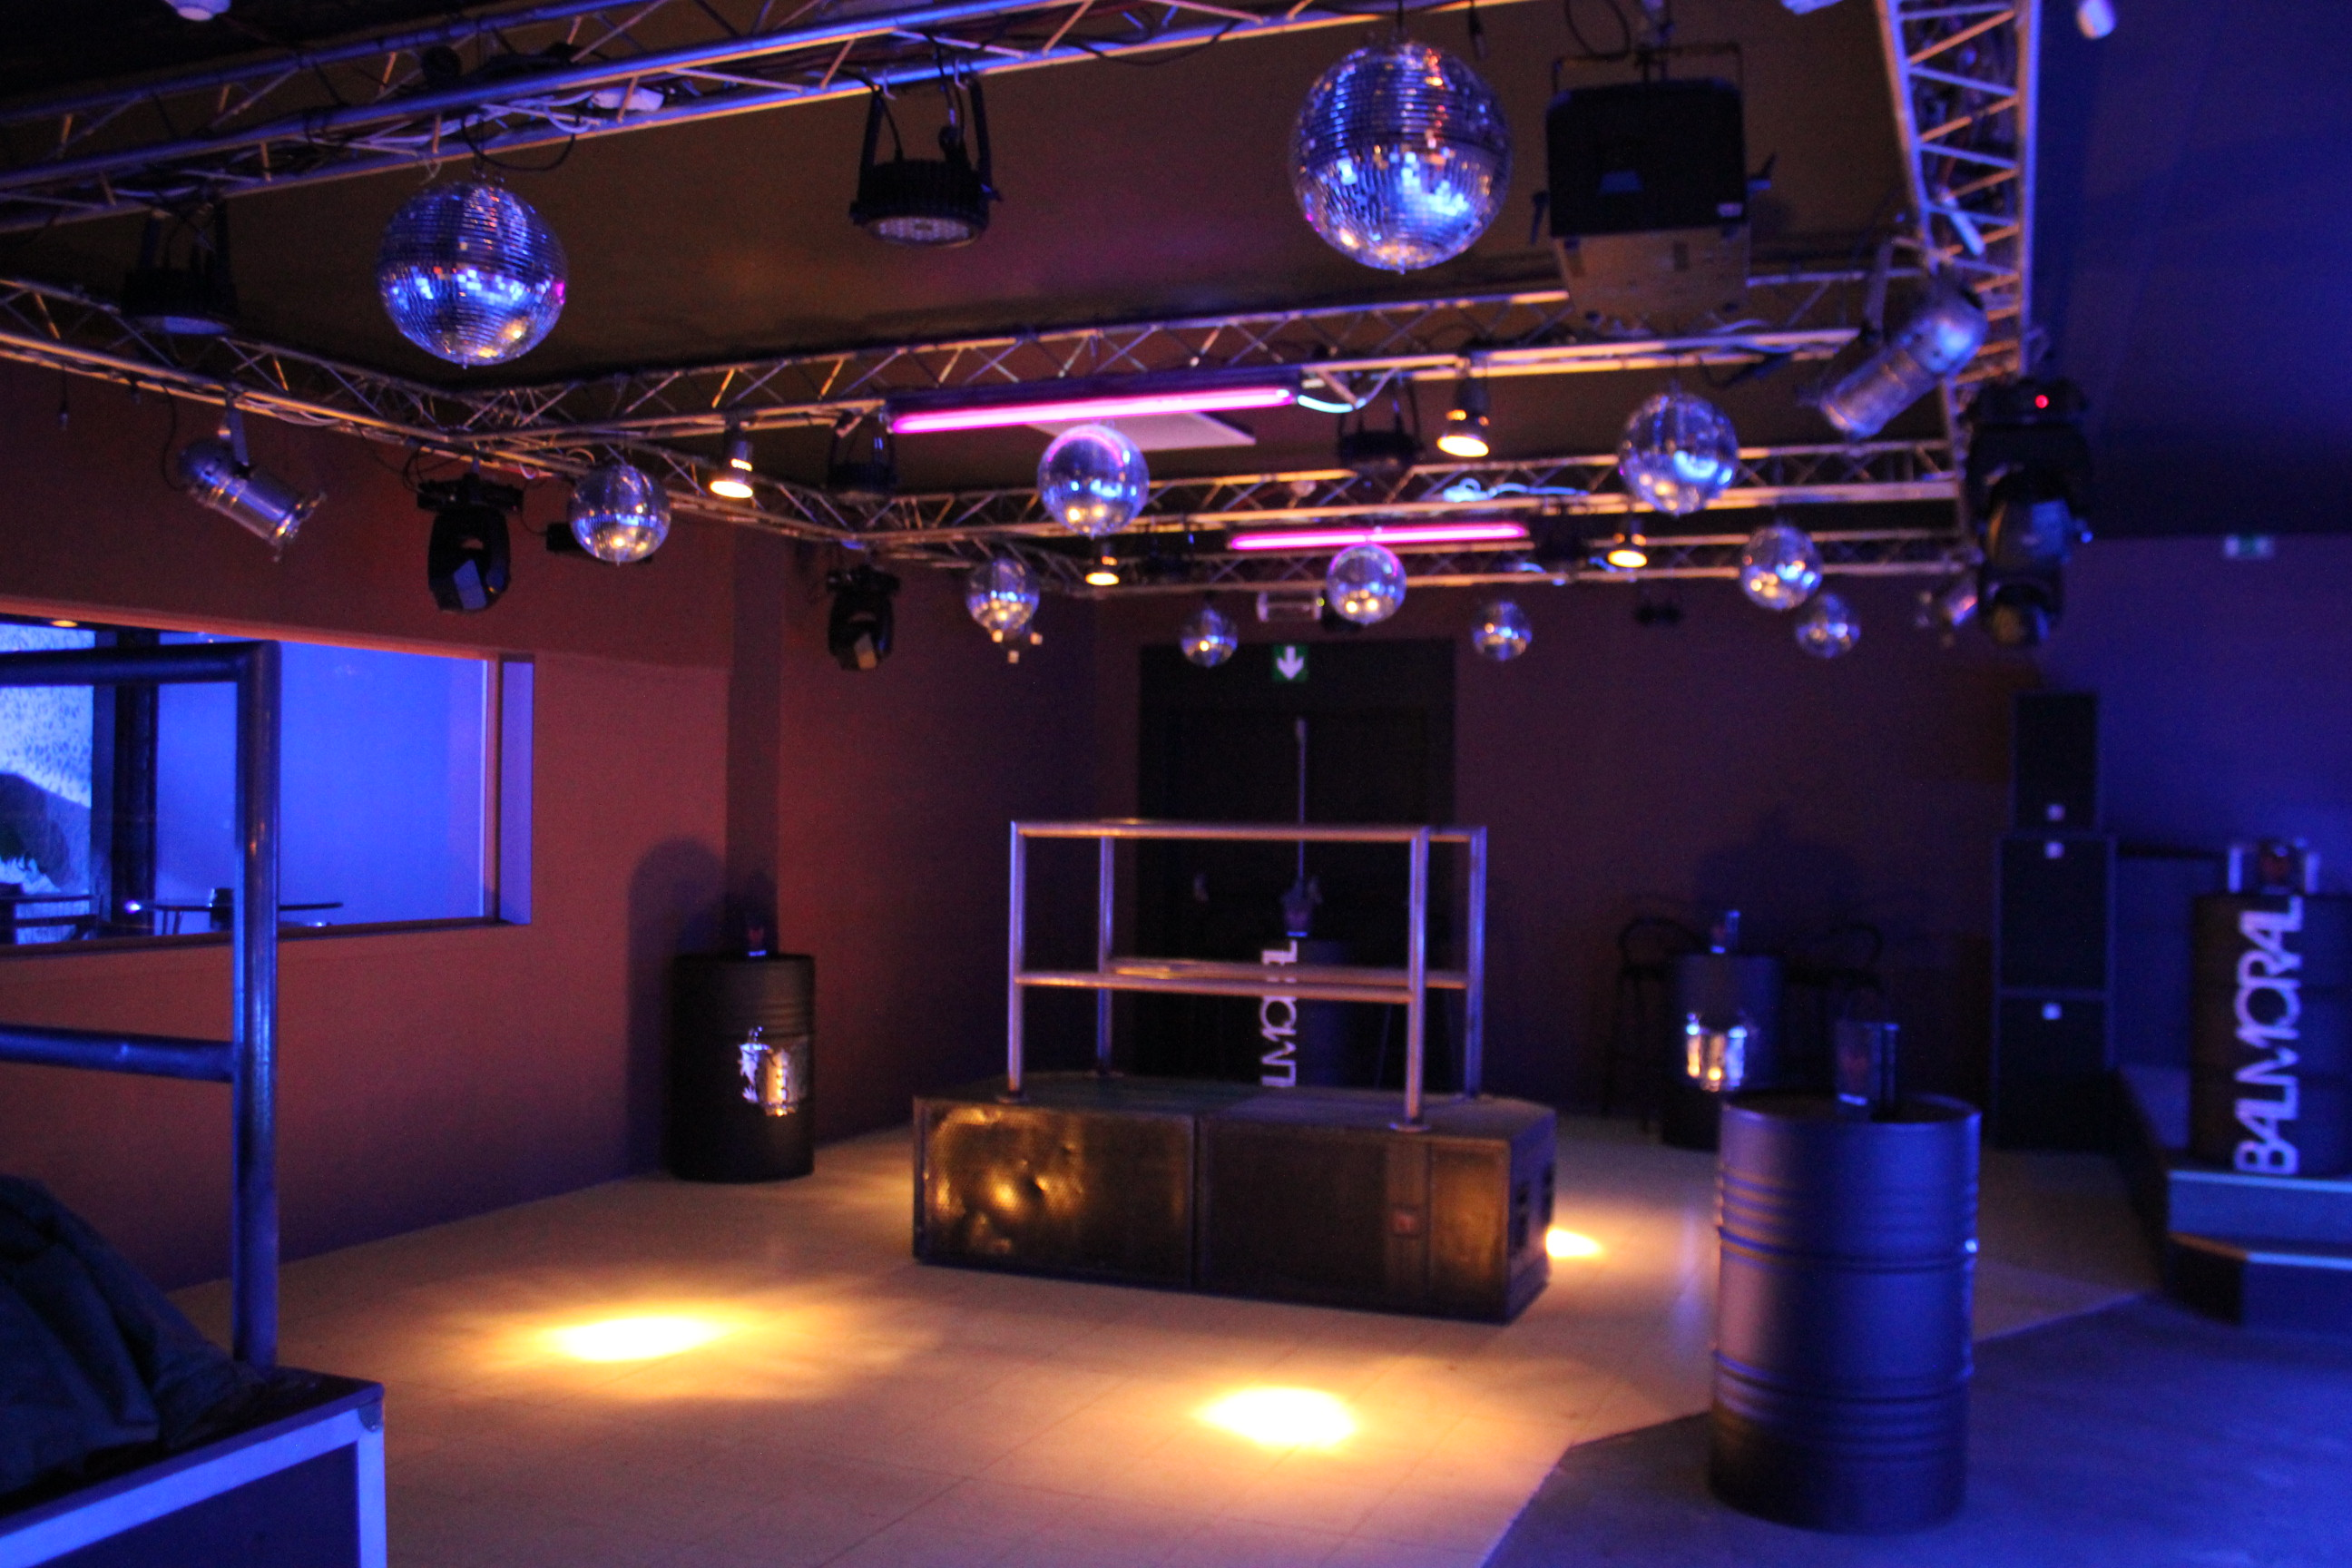 Discotheek Interieur Balmoral For The Love Of Clubbing